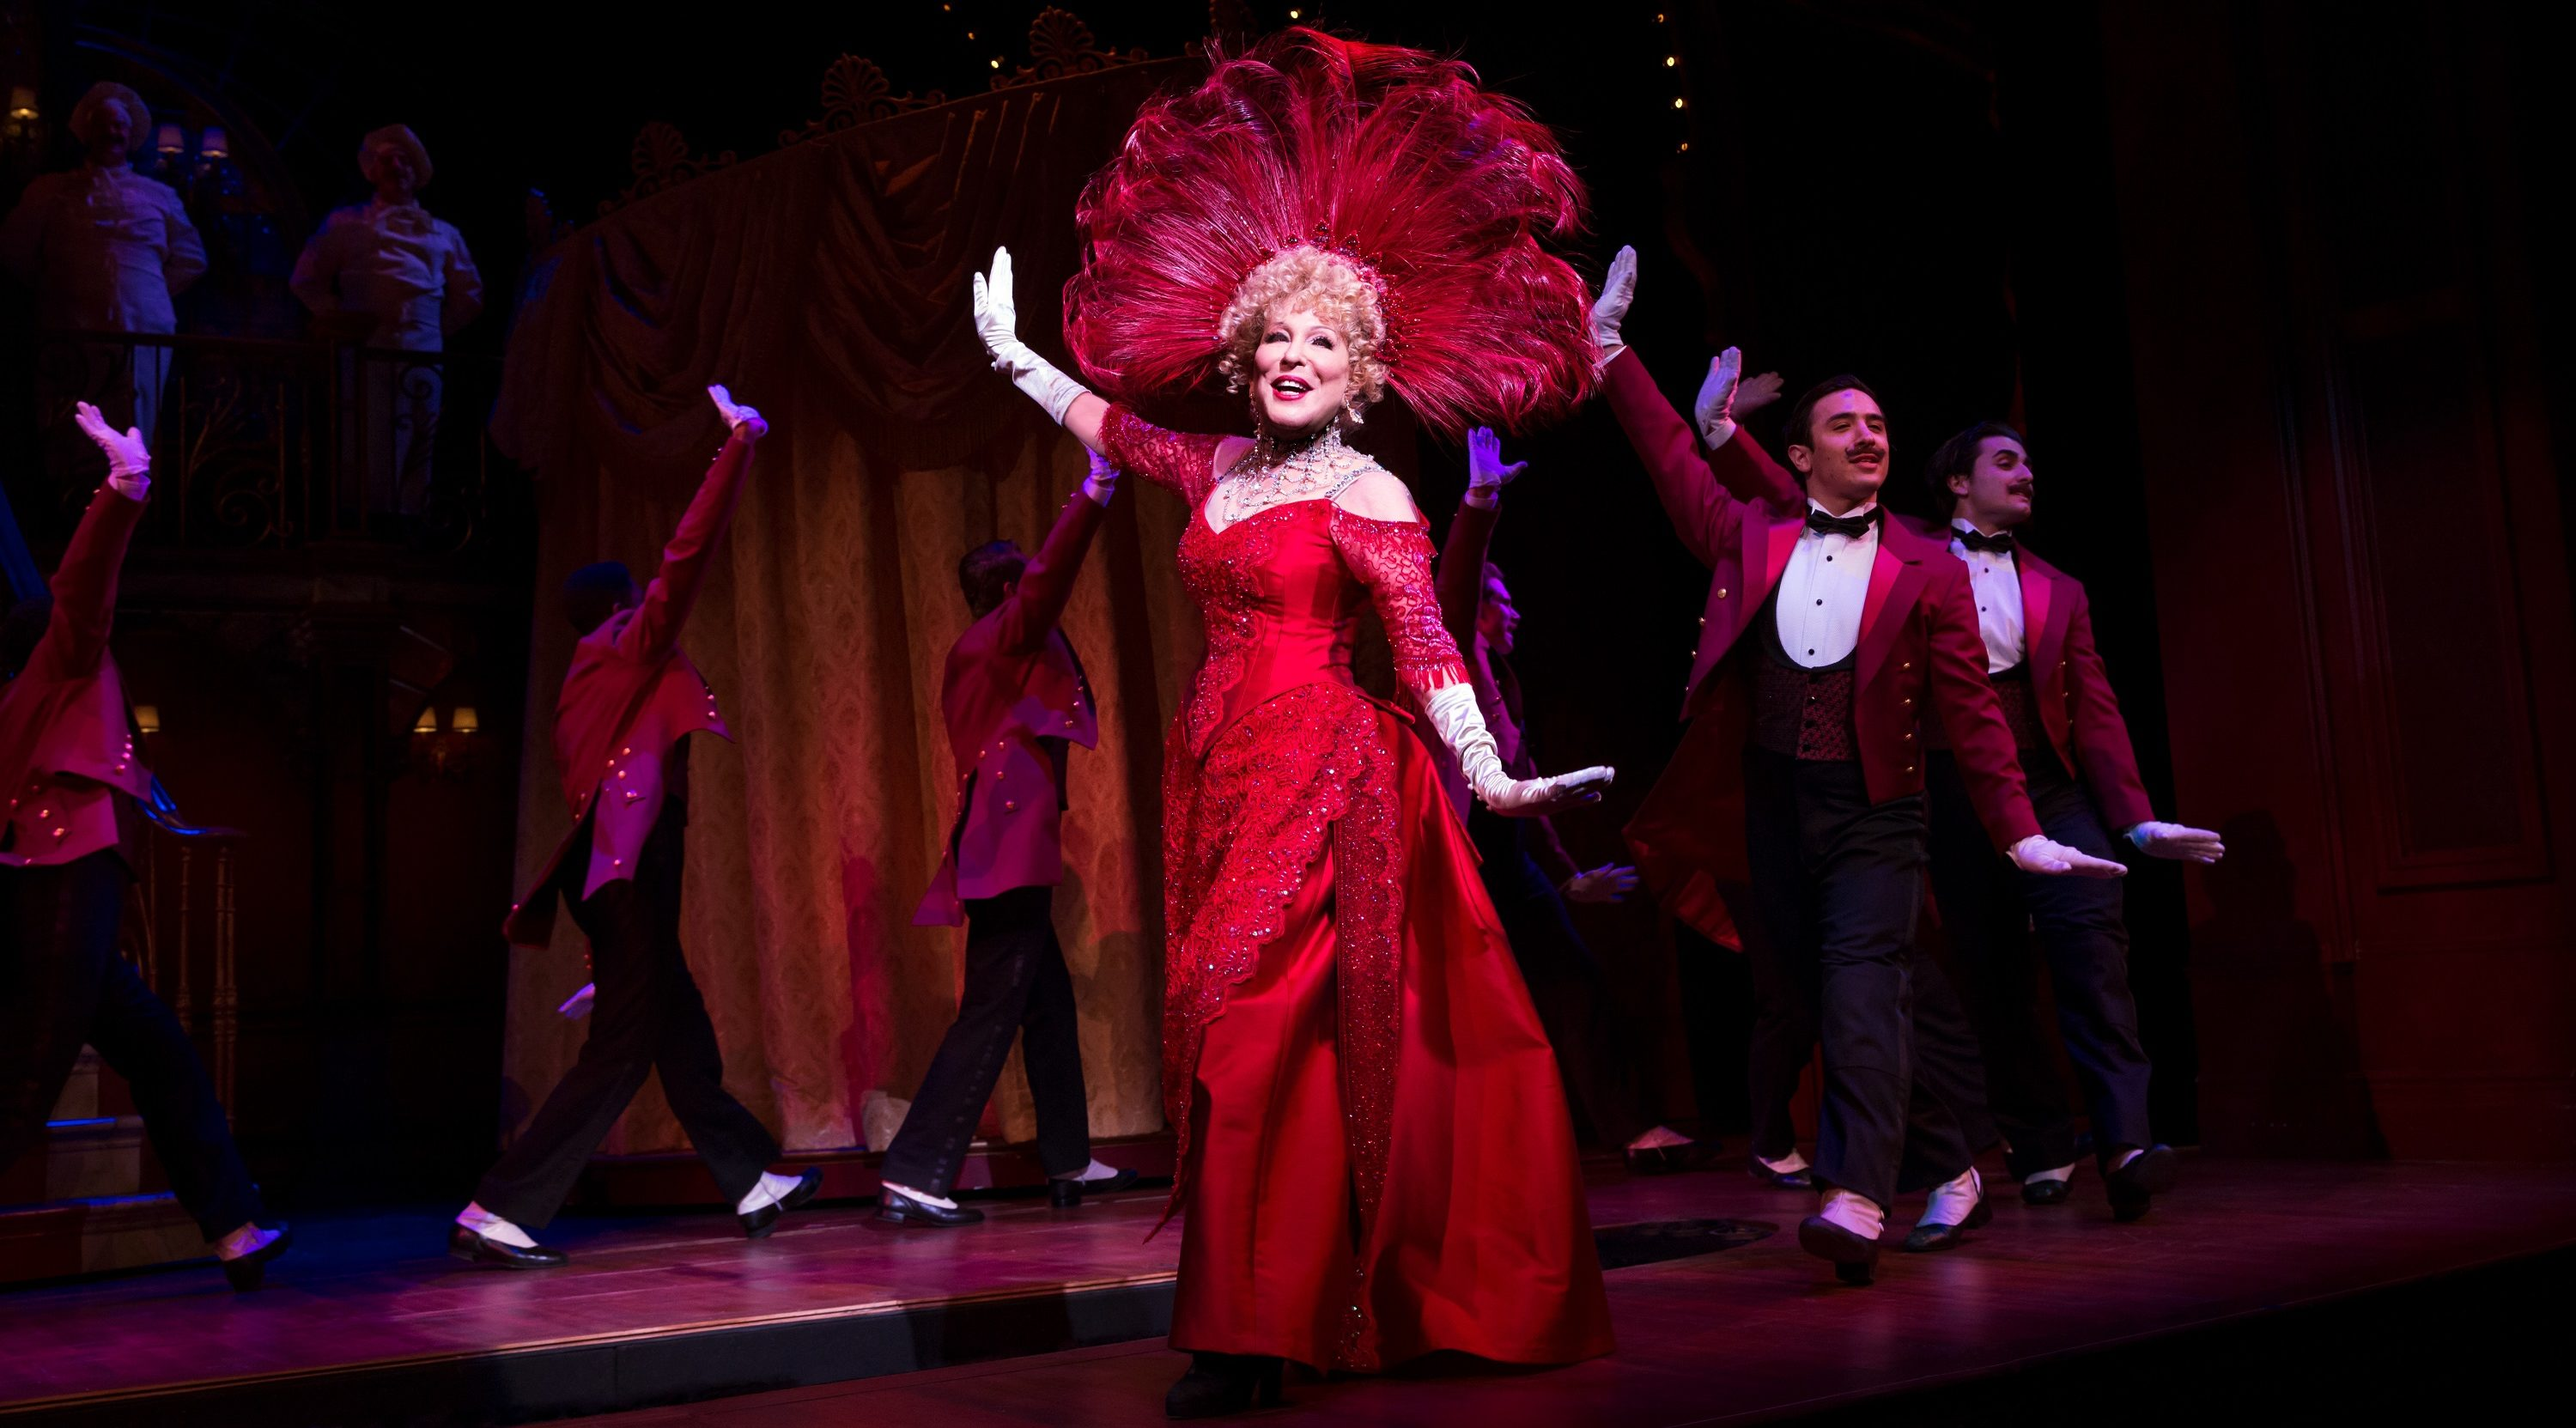 midler dancing in an elaborate red dress and feathered headwear